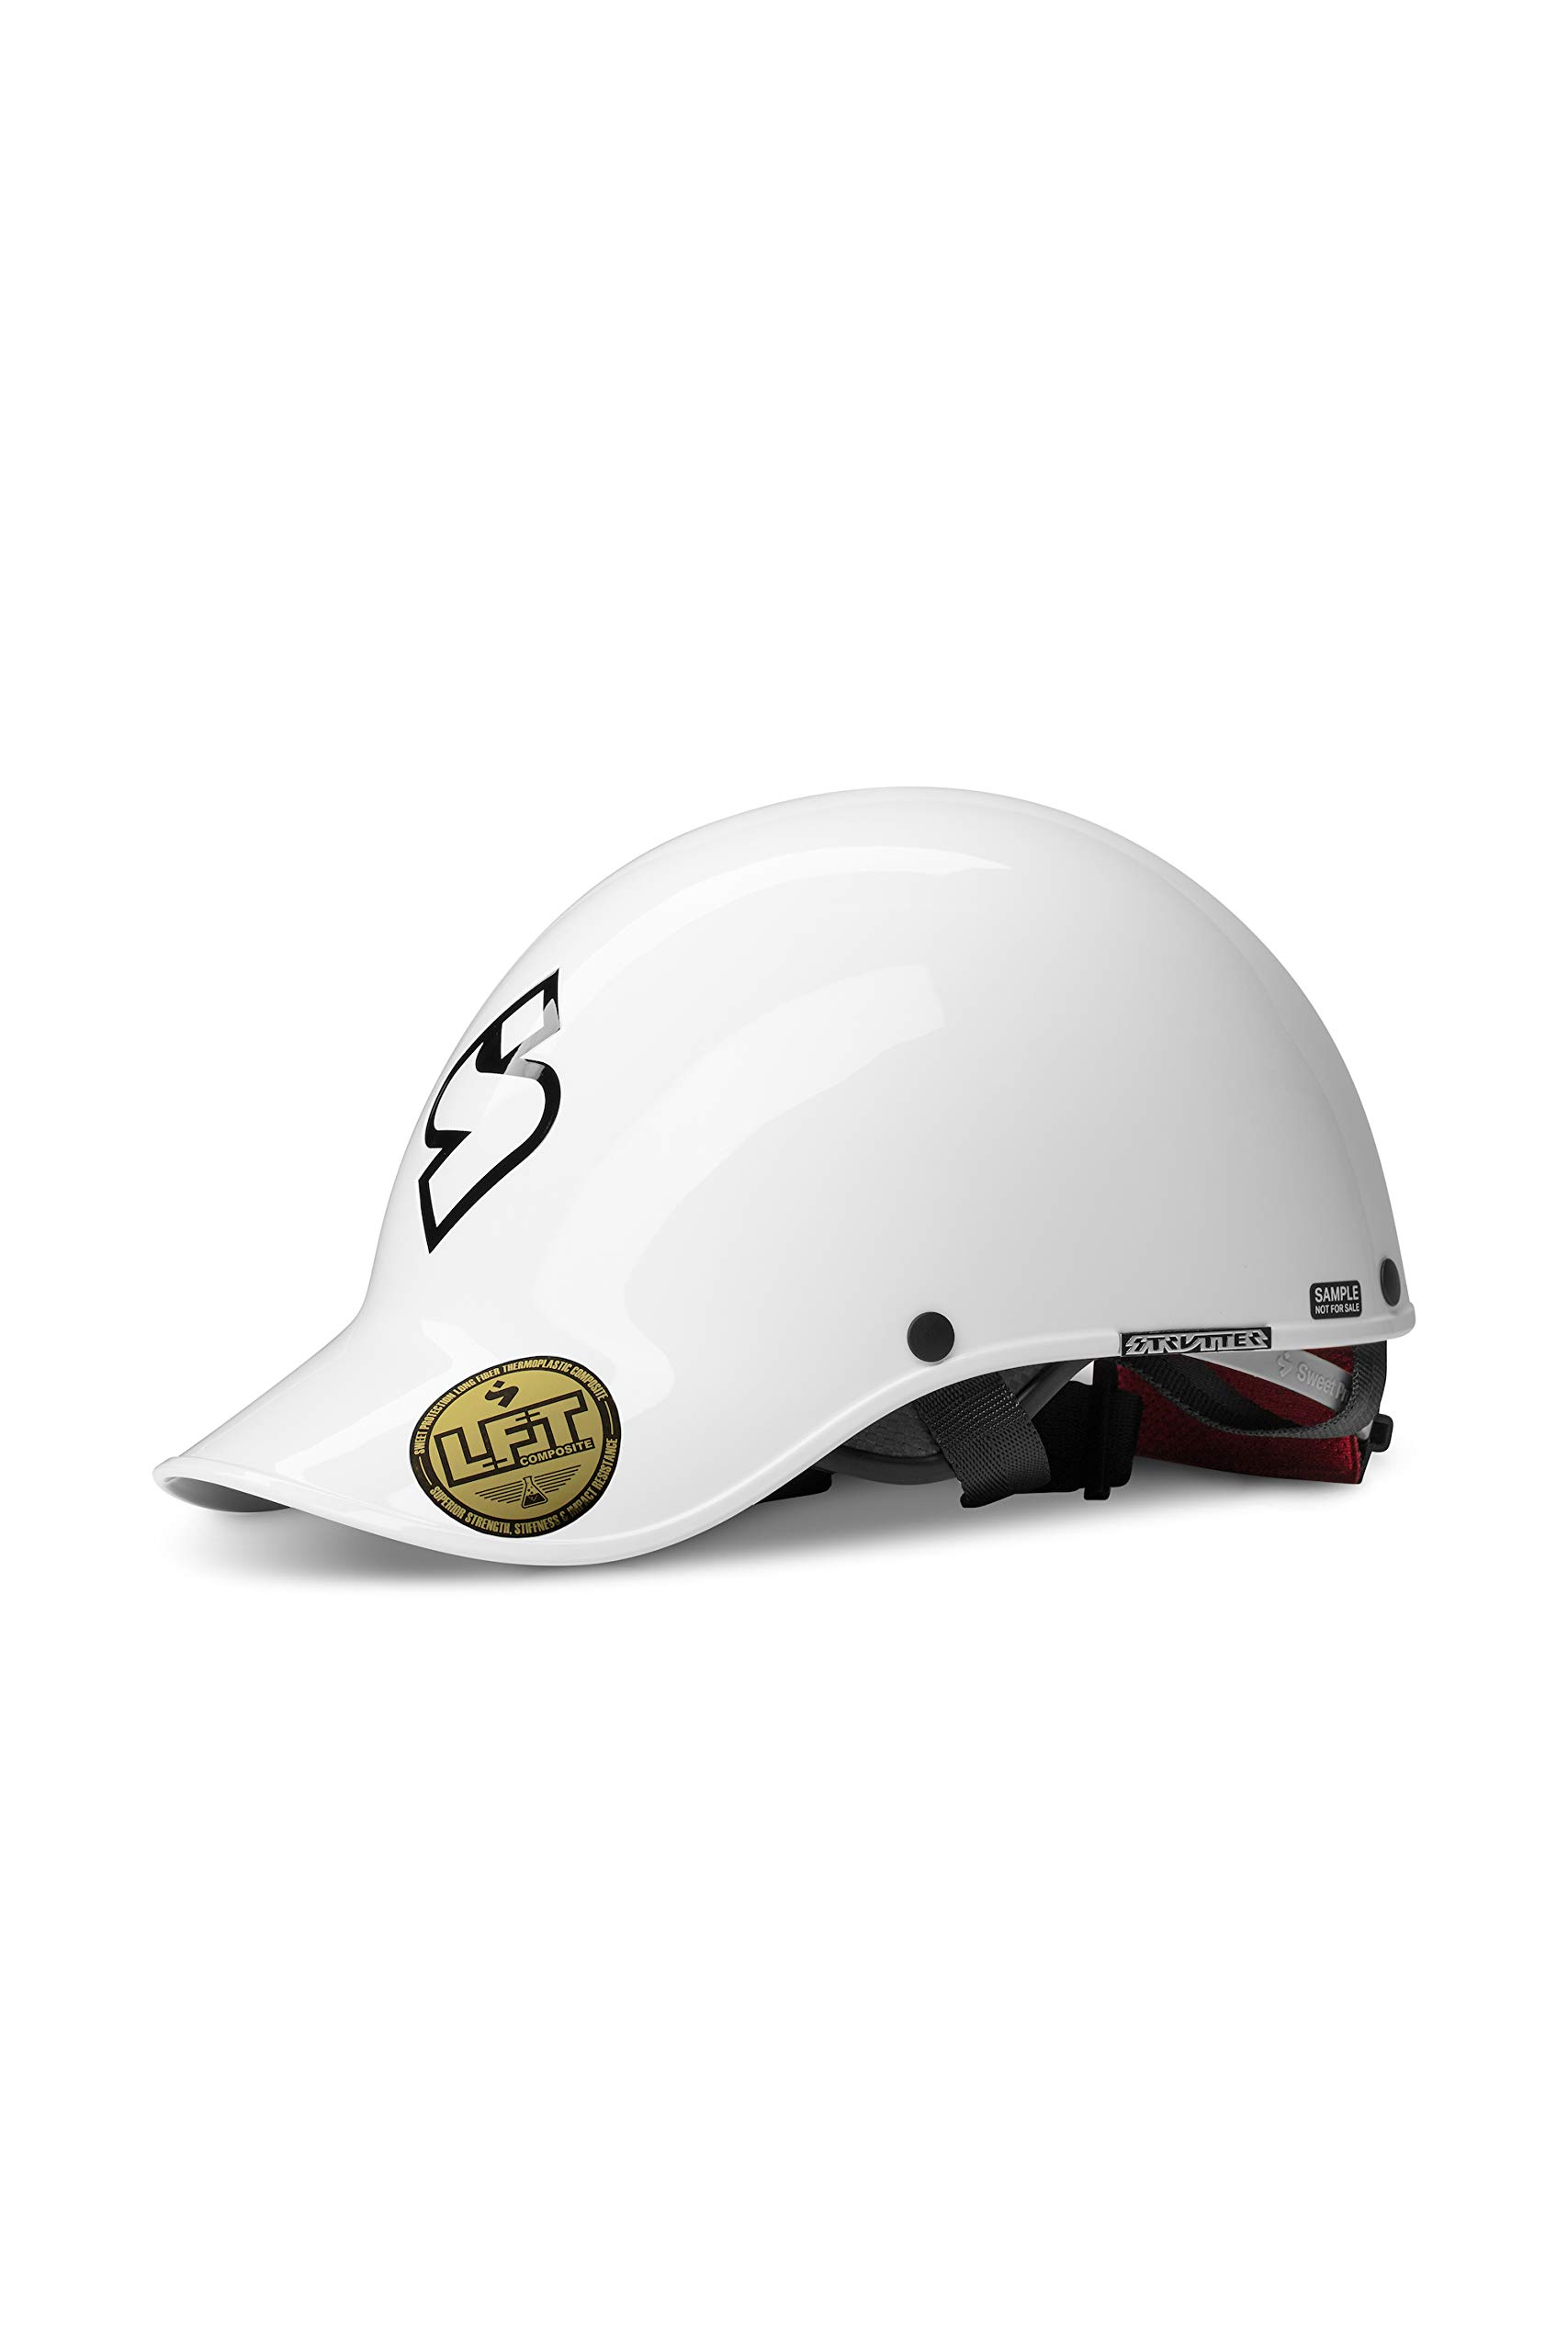 Sweet Protection Strutter Paddle Helmet, Gloss White, ML by Sweet Protection